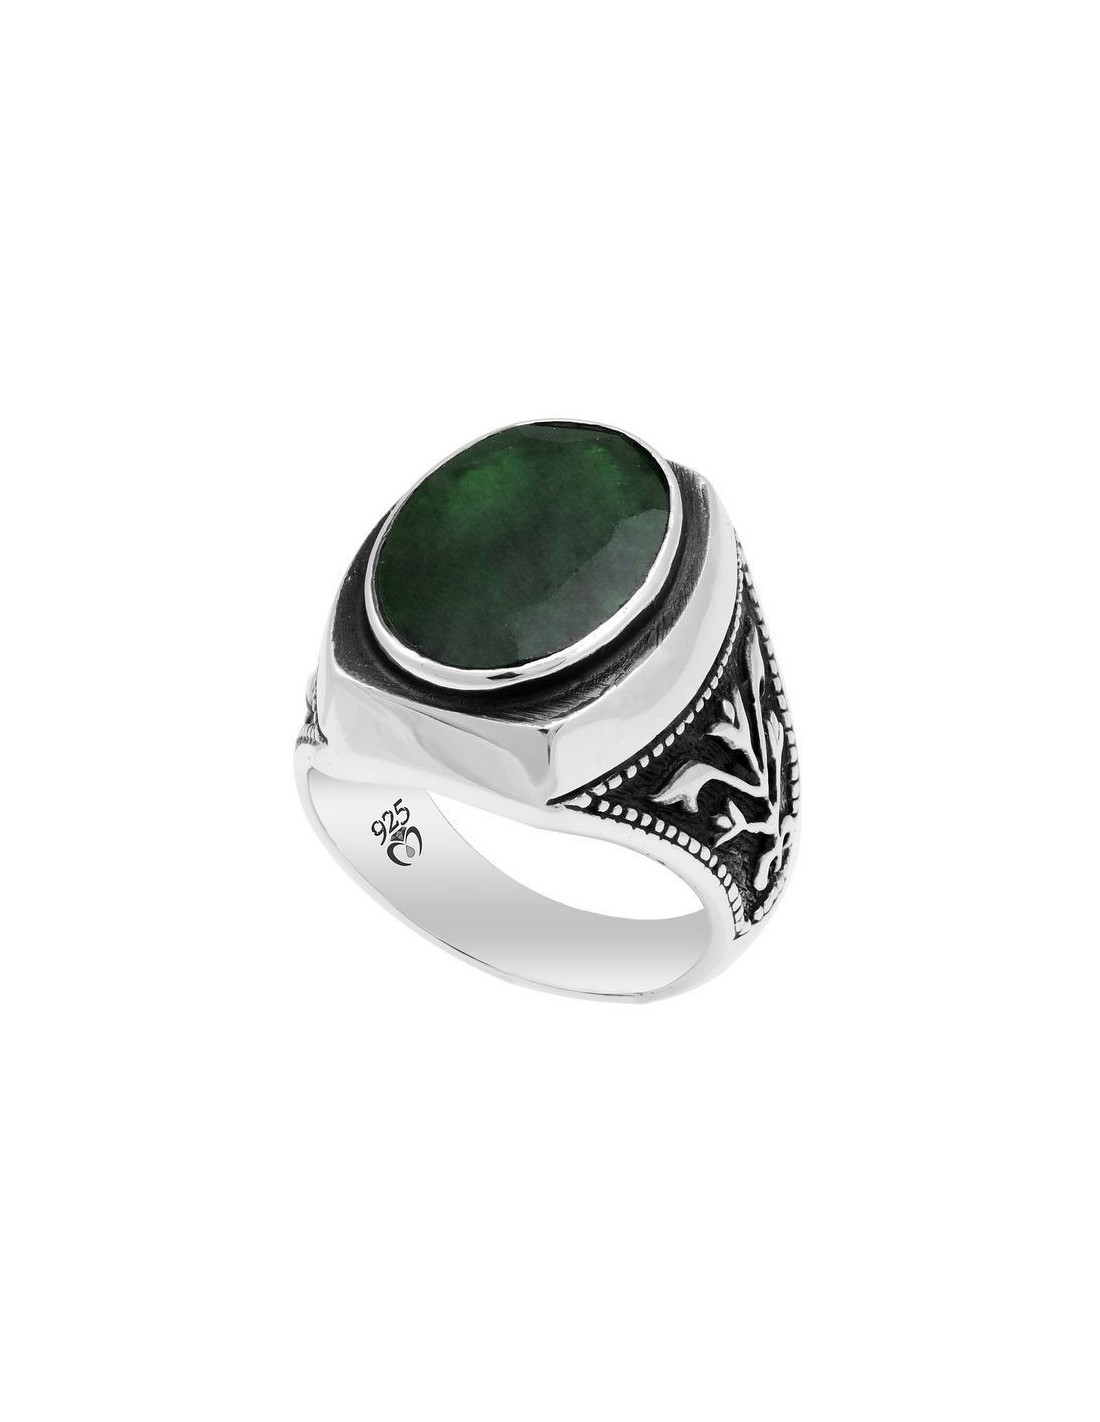 emerald mens ring in sterling silverfrom turkstyleshop silver jewelry